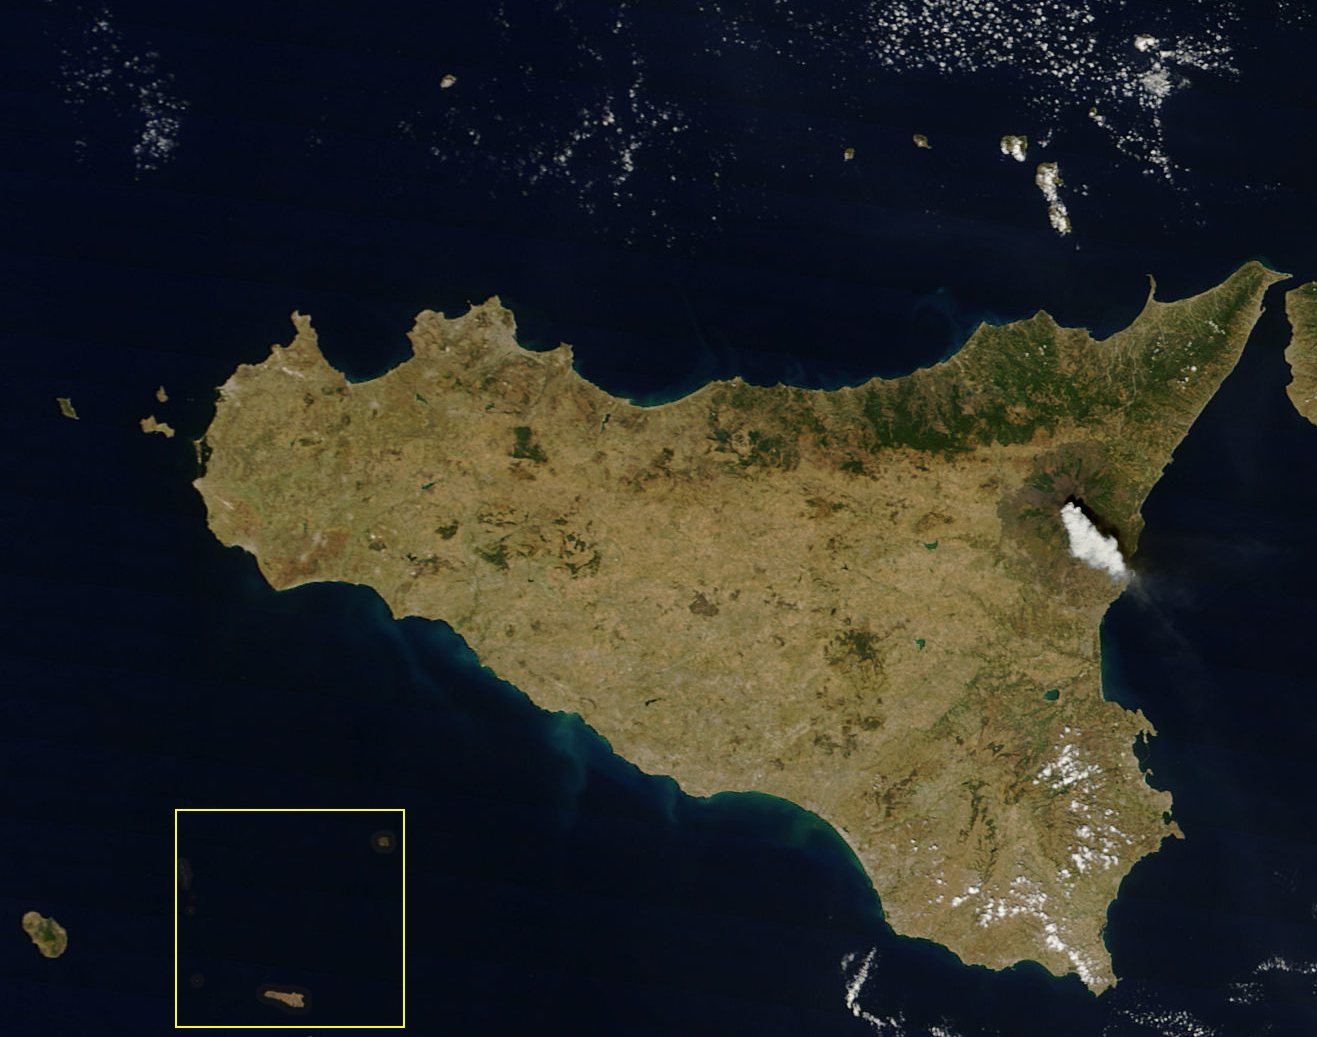 Cartina Sicilia Satellite.File Sicilia E Isole Minori Sat Jpg Wikimedia Commons